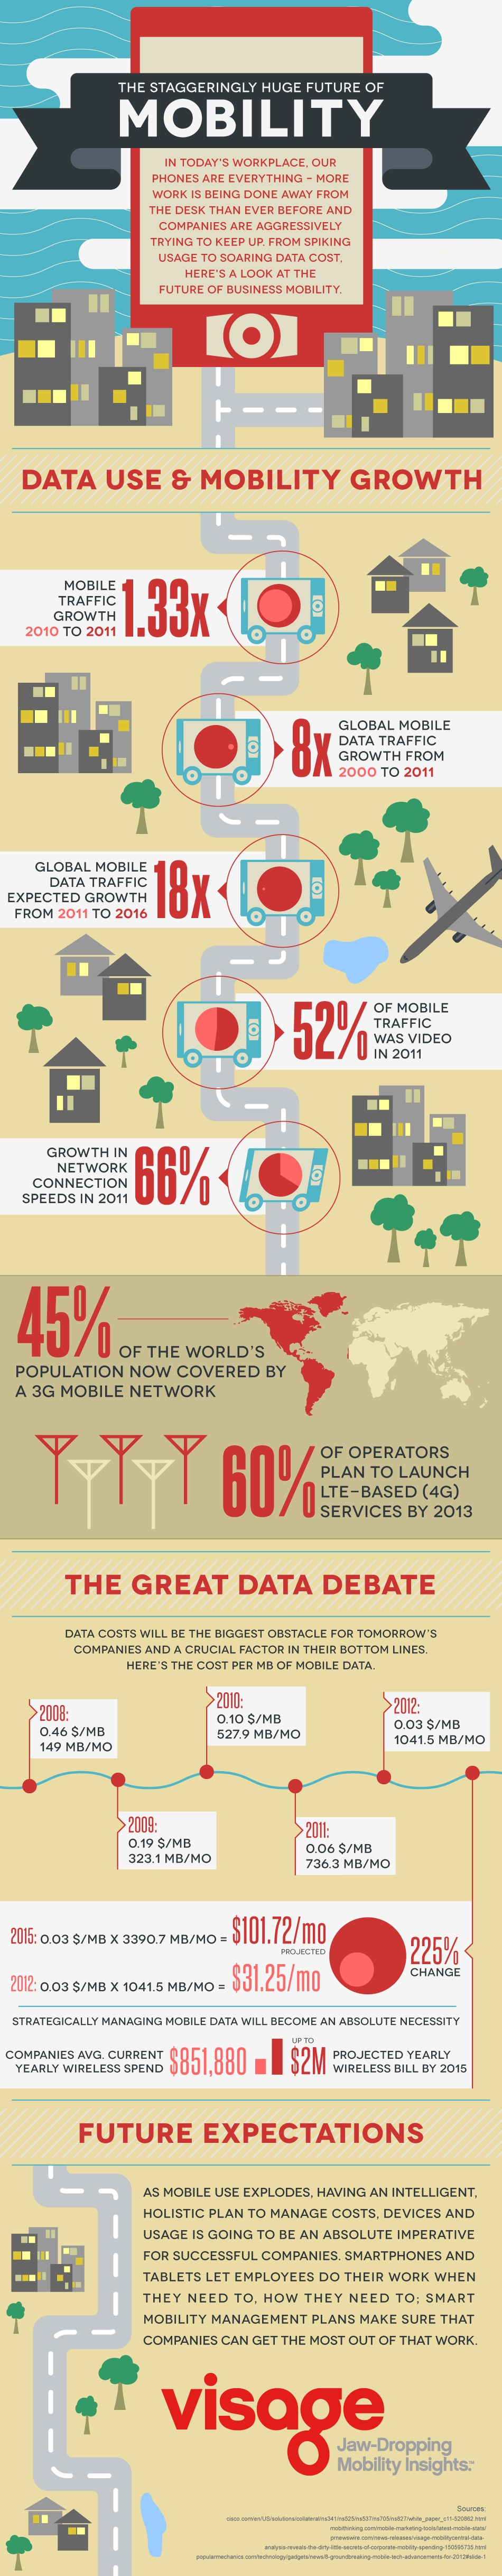 INFOGRAPHIC: The Staggeringly Huge Future of Mobility